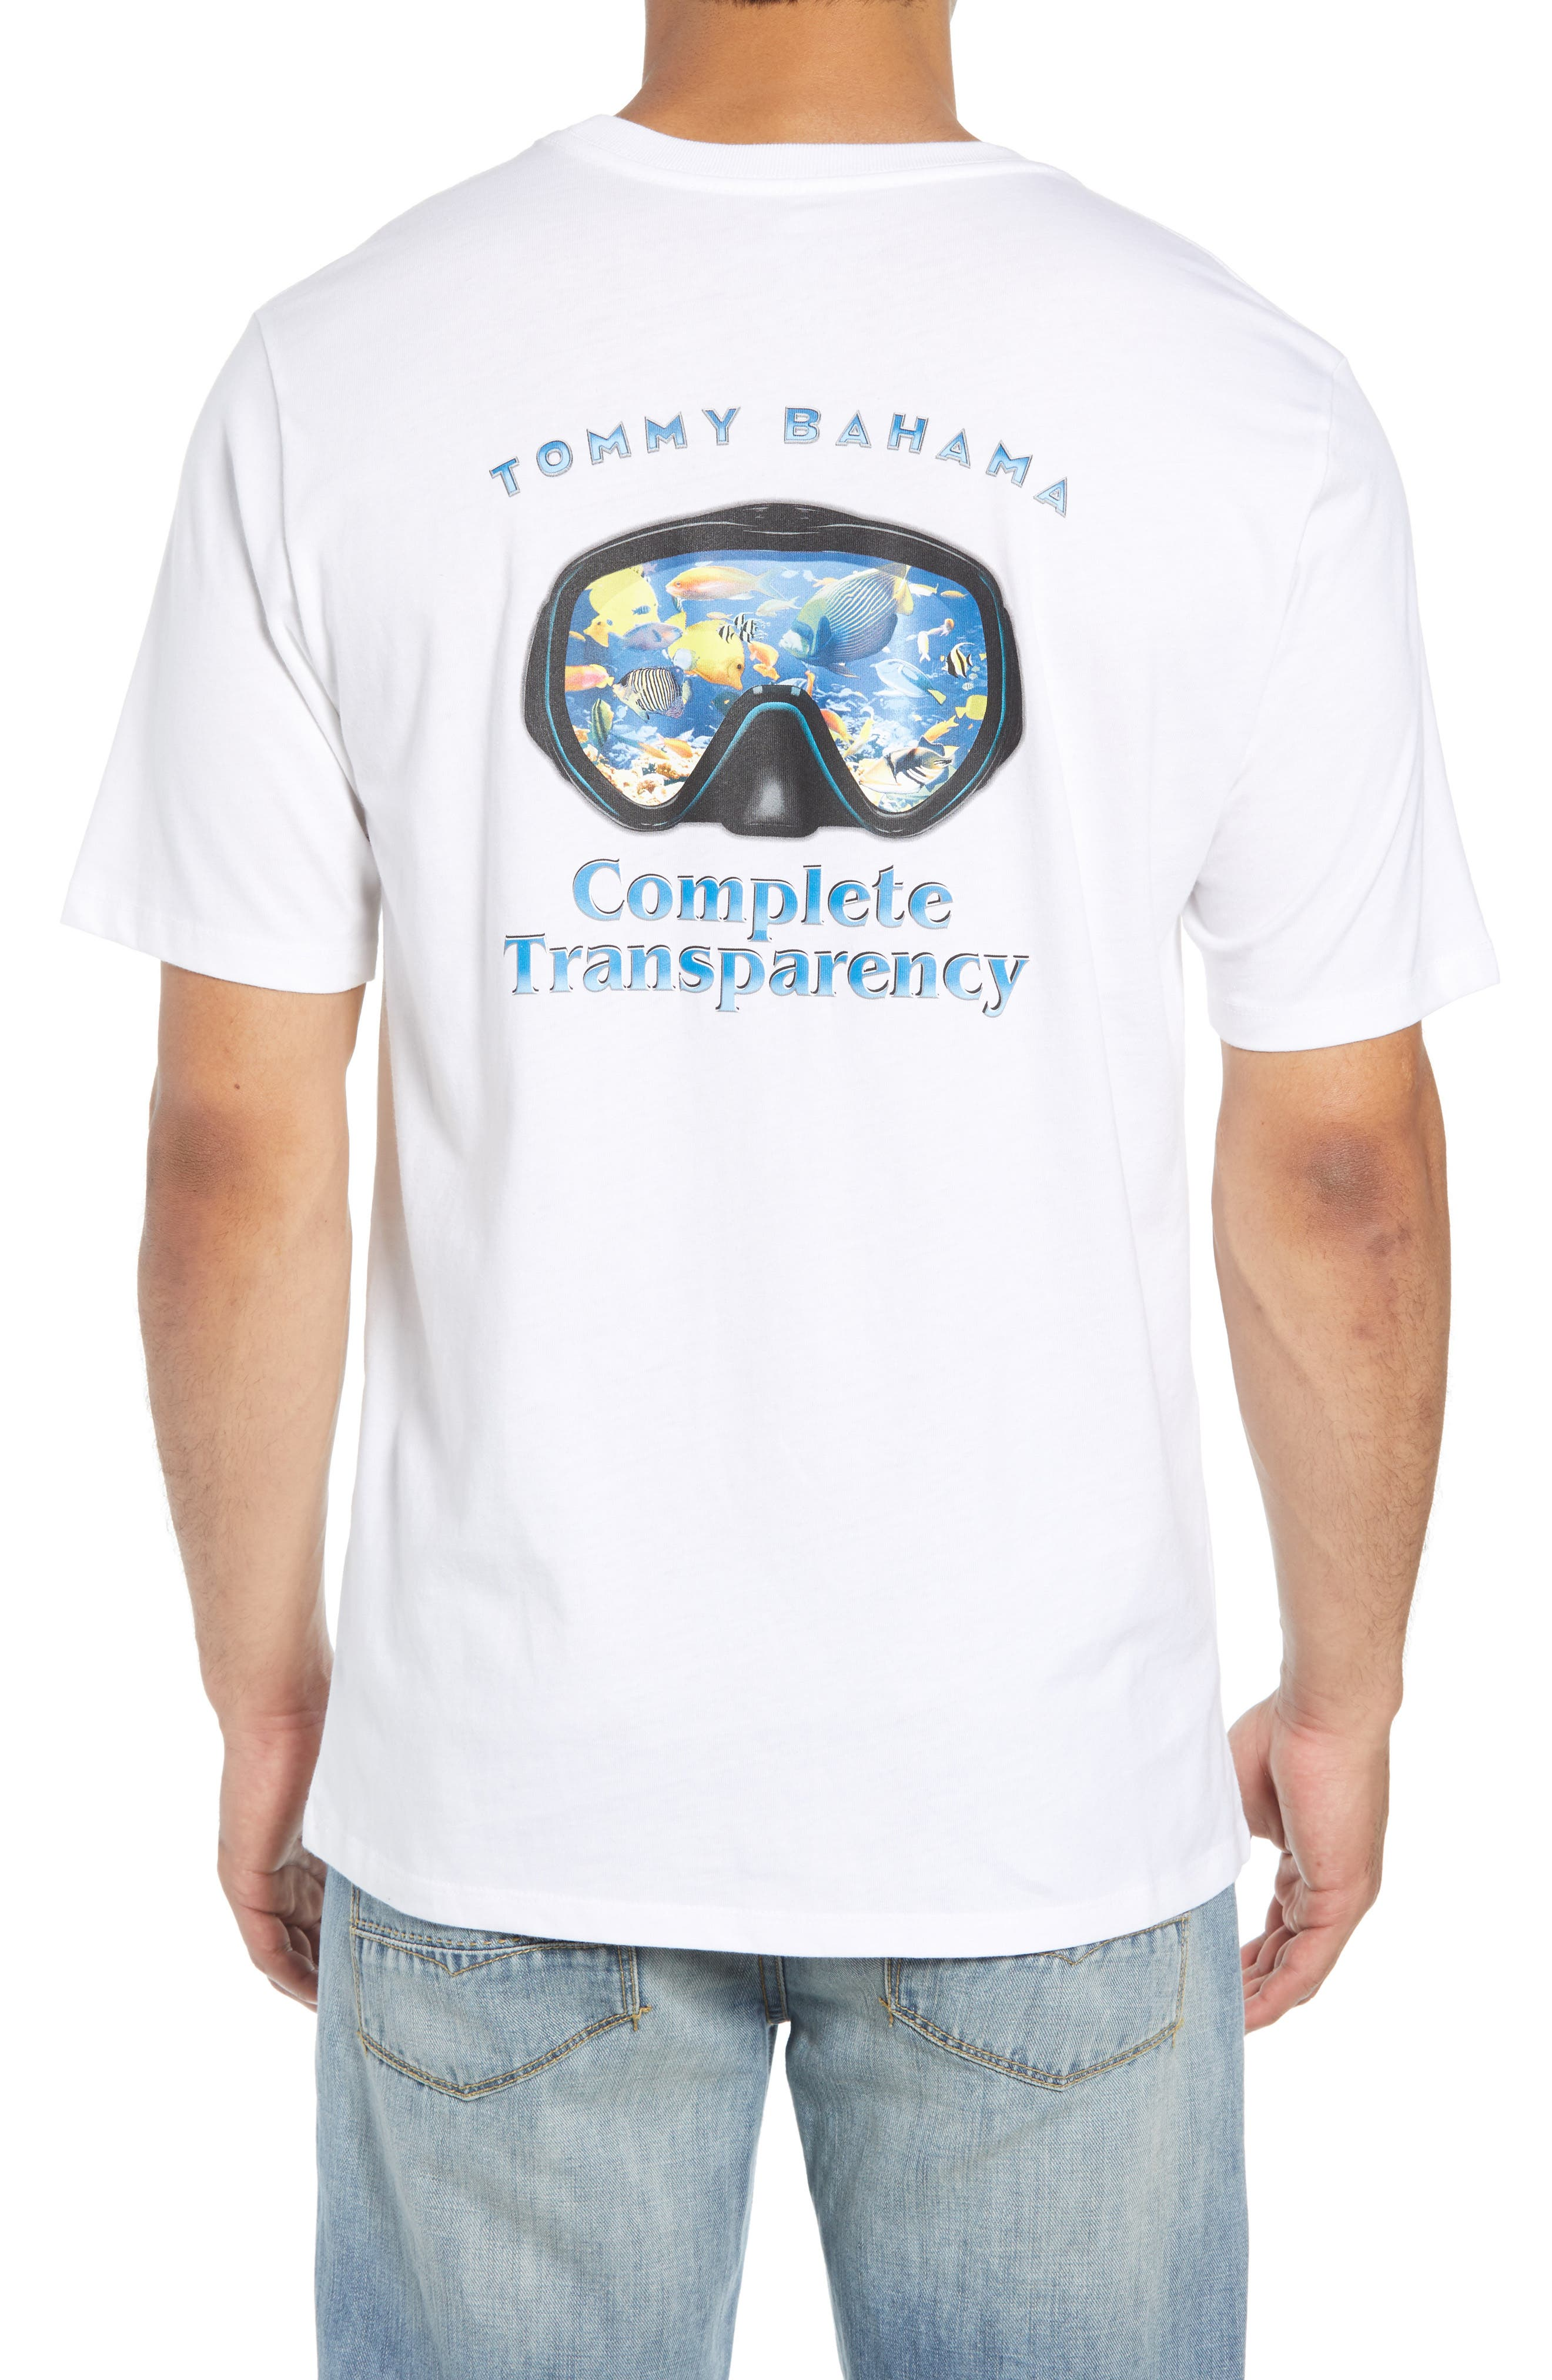 TOMMY BAHAMA,                             Complete Transparency T-Shirt,                             Alternate thumbnail 2, color,                             100